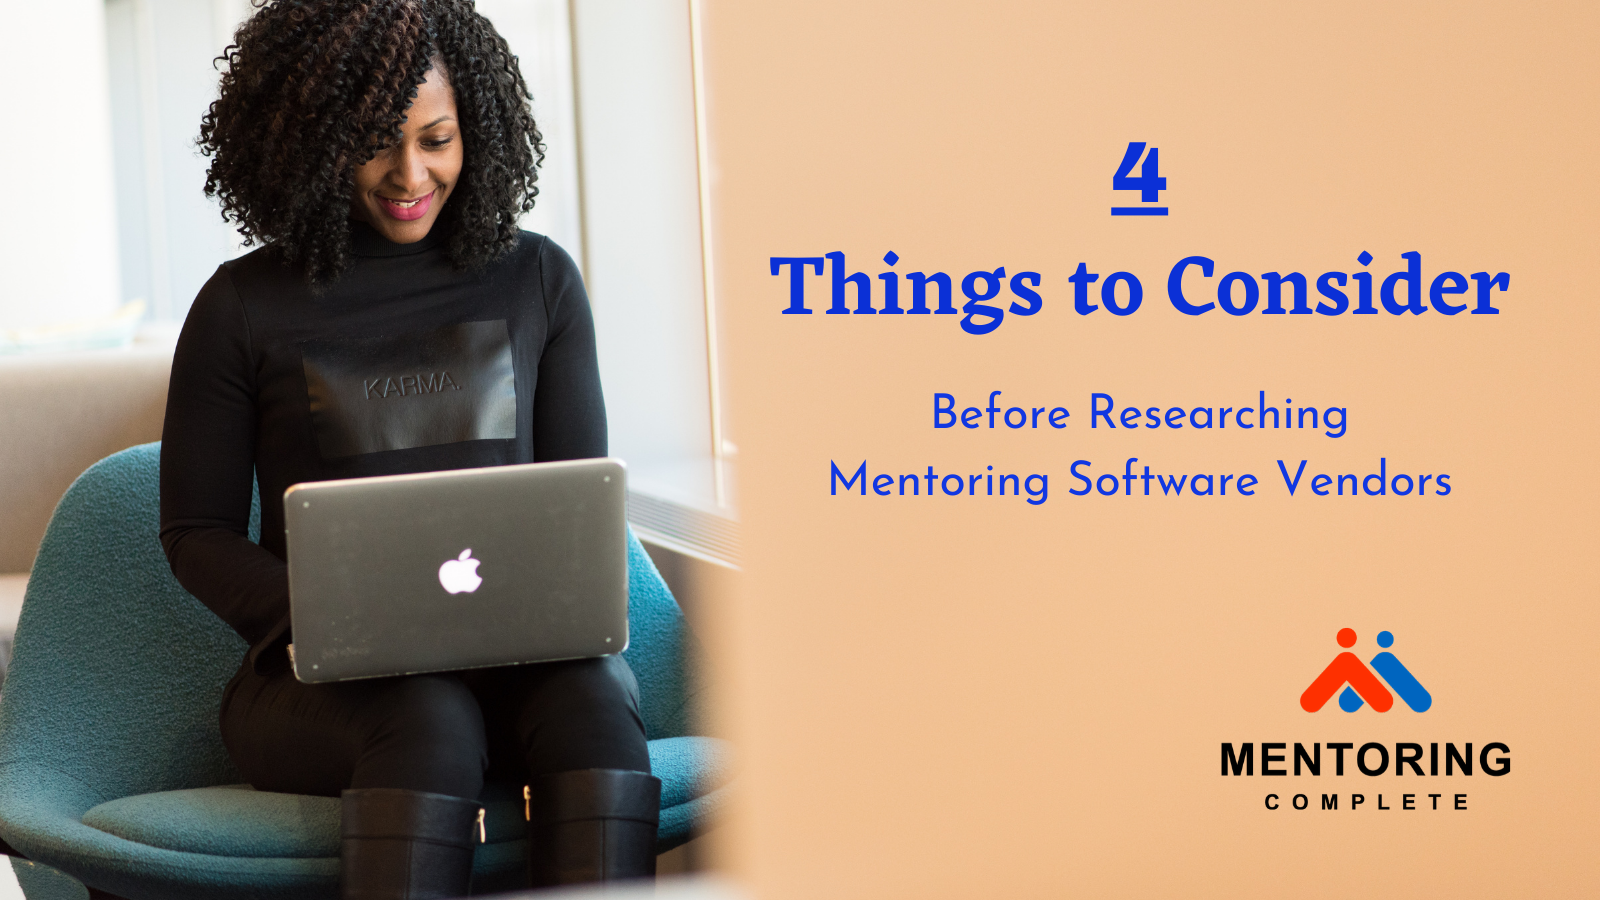 Research Mentoring Software - 4 Things to Consider